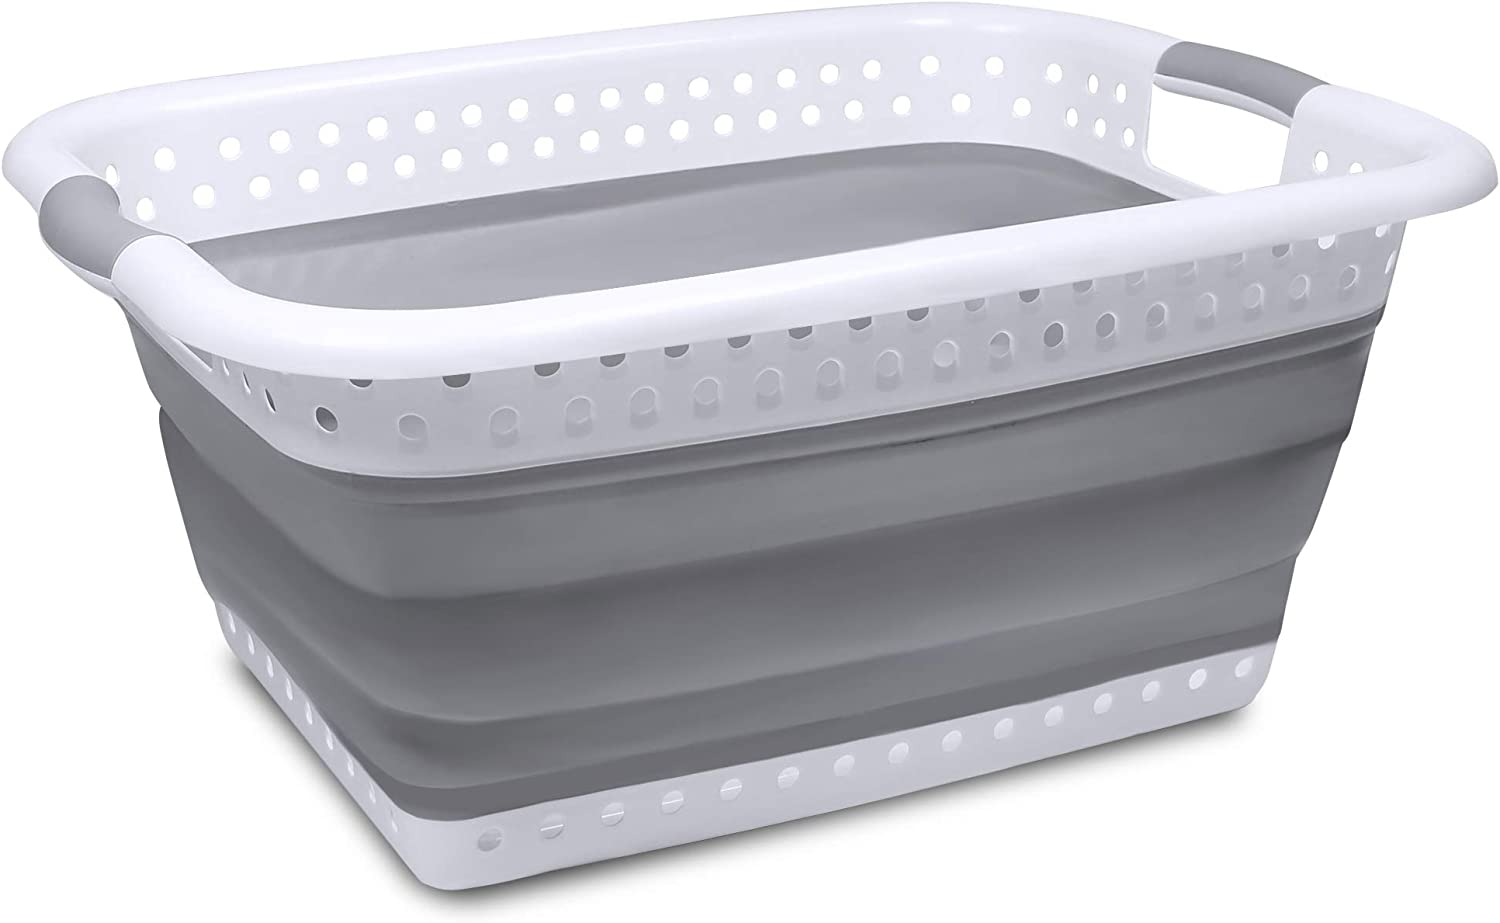 Maypott Collapsible Plastic Laundry Basket - Foldable Pop-Up Laundry Basket - Square Space Saving Storage Container Organizer- Portable Plastic Laundry Basket with Handles(White & Grey)